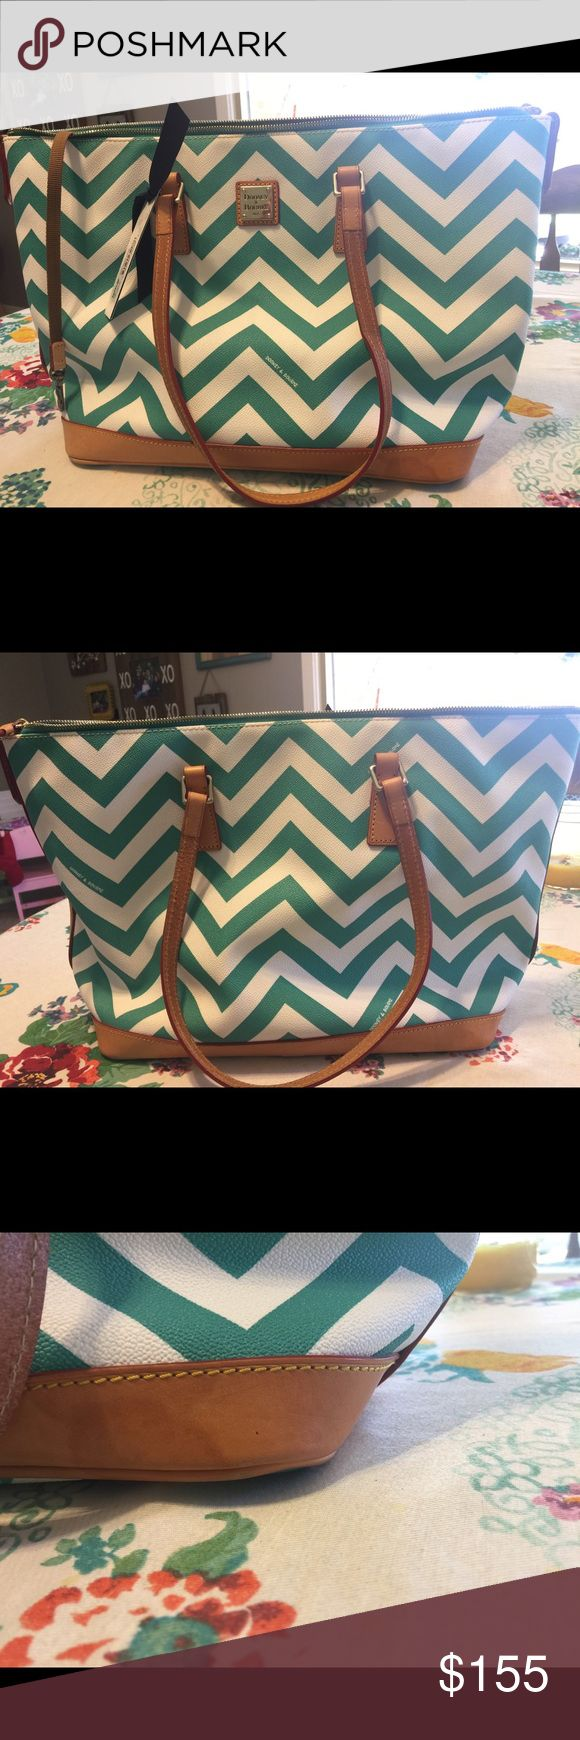 """Dooney and Bourk Chevron Teal tote and coin purse. * Chevron teal  * All over  Sea foam Chevron stripe,double straps, metal-plated logo, zipper closure with tassels, goldtone hardware, four bottom feet * Back-wall zip and slip pockets, two front-wall slip pockets, key keeper * Measures approximately 17-1/2""""W x 11-1/2""""H x 6""""D with a 9"""" strap drop; weighs approximately 1 lb, 9 oz * Body 81% PVC/19% cotton; lining 100% cotton * Imported.     ***** bottom of tote does have water spots but not…"""